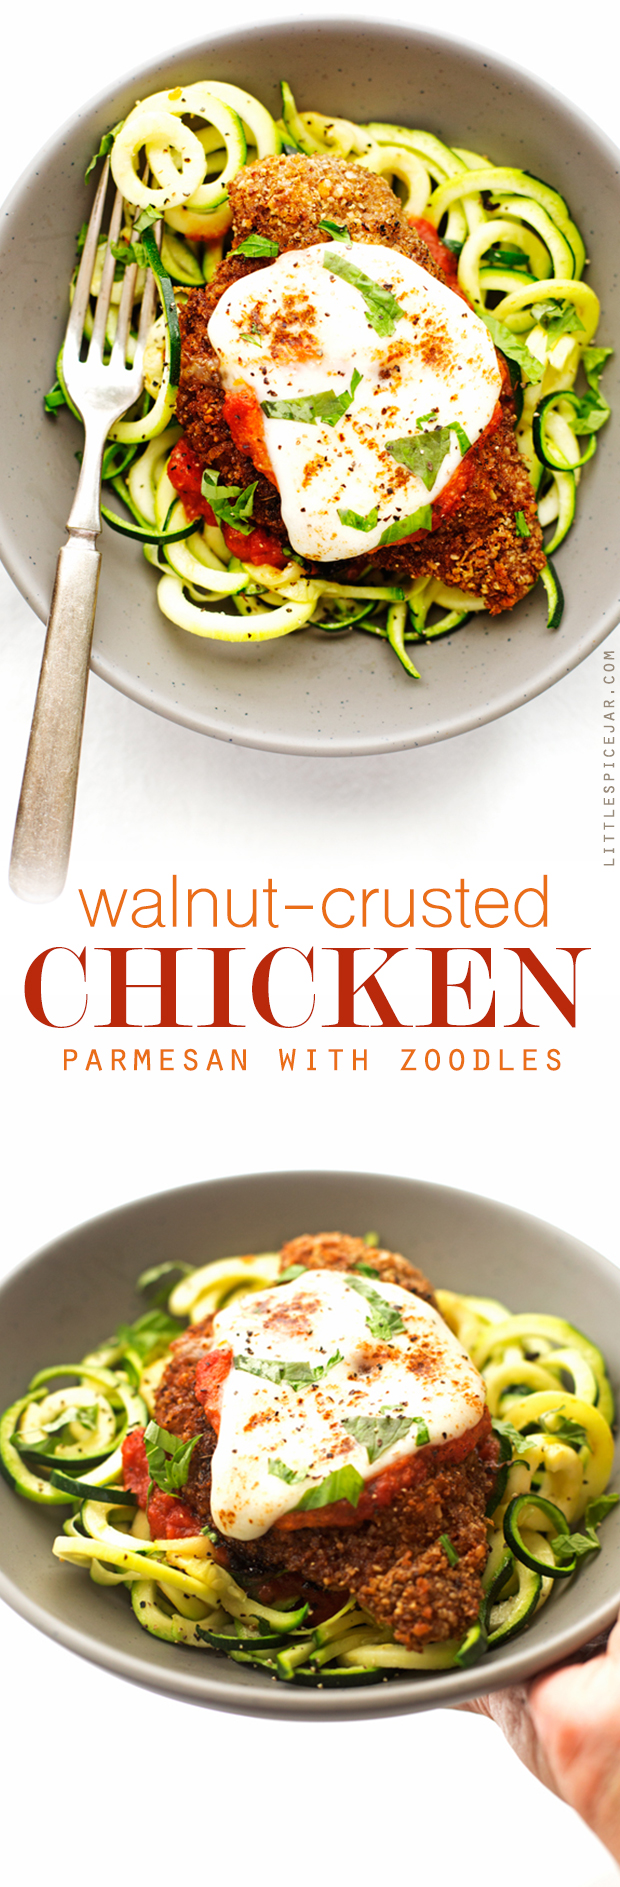 Walnut Crusted Healthy Chicken Parmesan with Zoodles - A healthier take on the chicken parm - we're using walnuts to coat the chicken so it's healthier but still has that crunch! #healthychickenparmesan #walnutcrustedchicken #bakedchicken #chickenparmesan   Littlespicejar.com